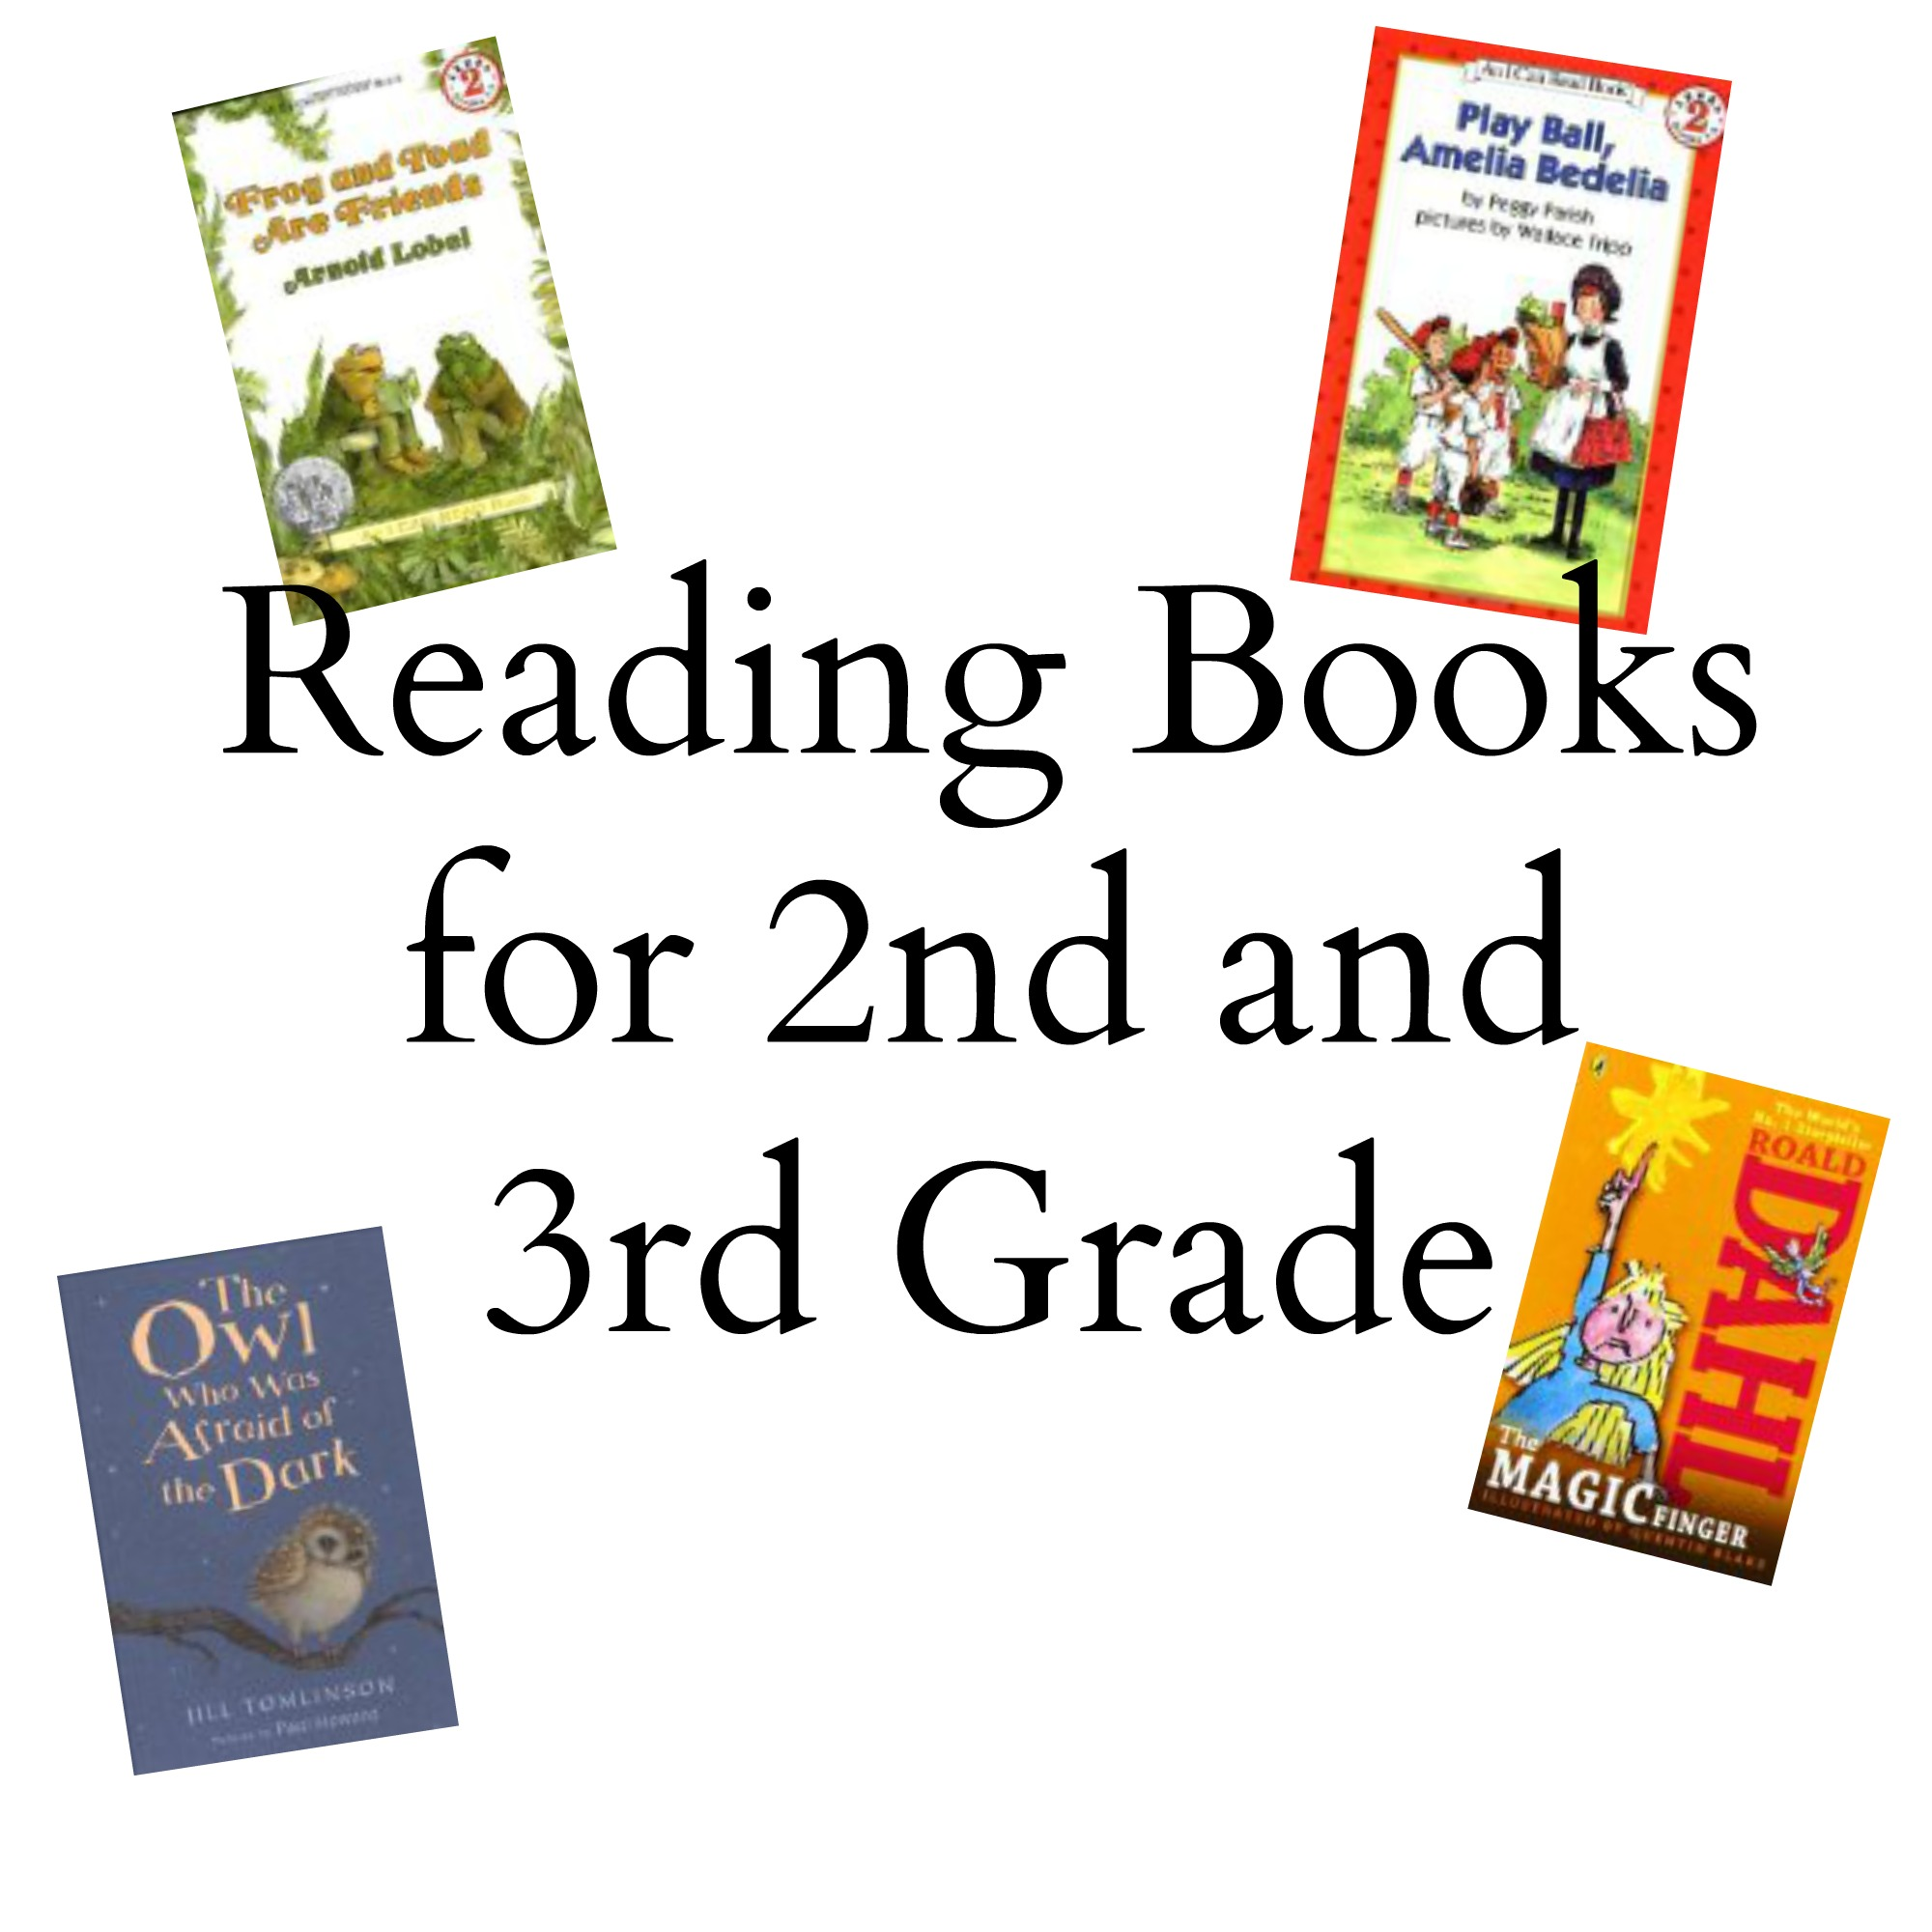 Worksheet 3rd Grade Level reading books for 2nd and 3rd grade eclectic homeschooling reading